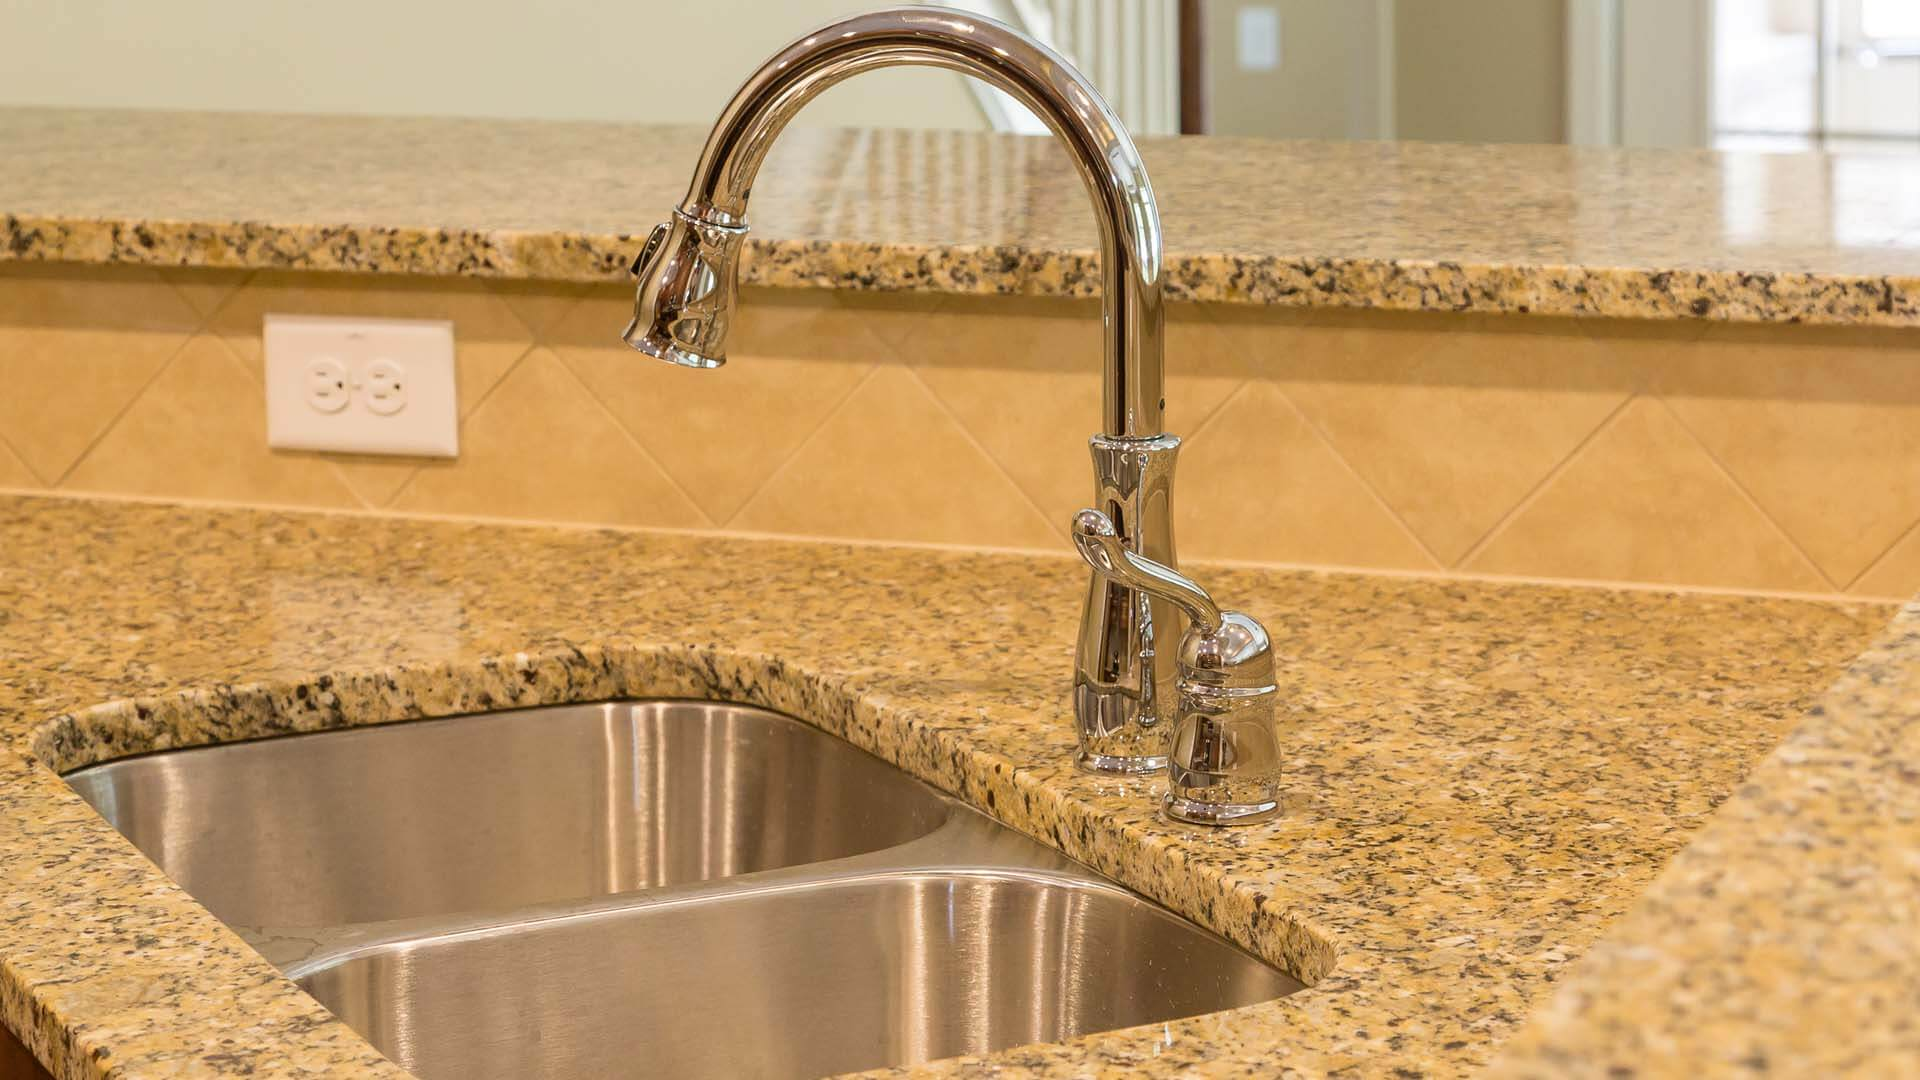 New kitchen faucet installation at home in Winter Haven, FL.